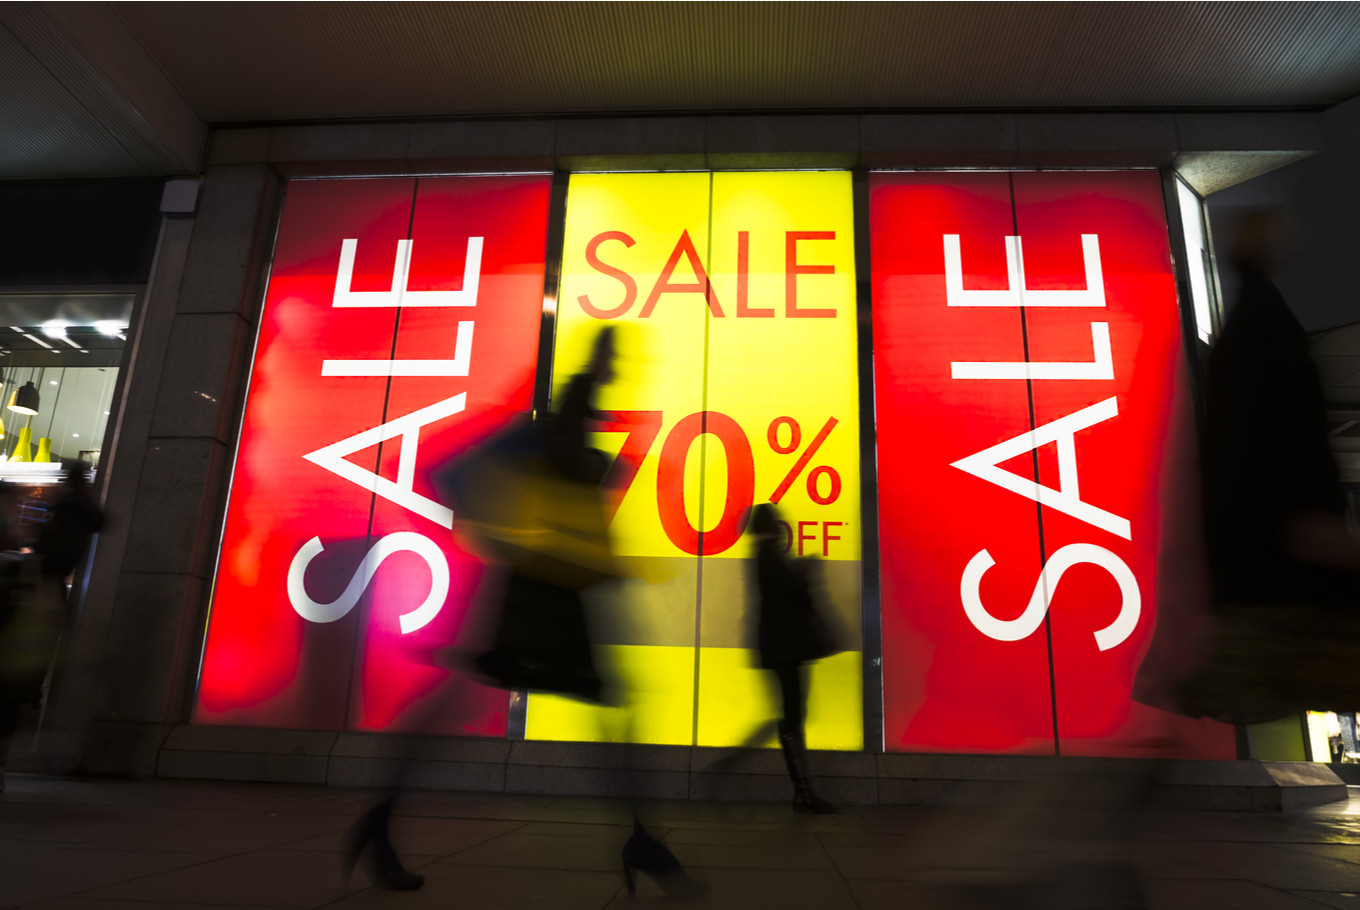 Discounts, fast fashion and retail therapy: The never-ending cycle of wanting